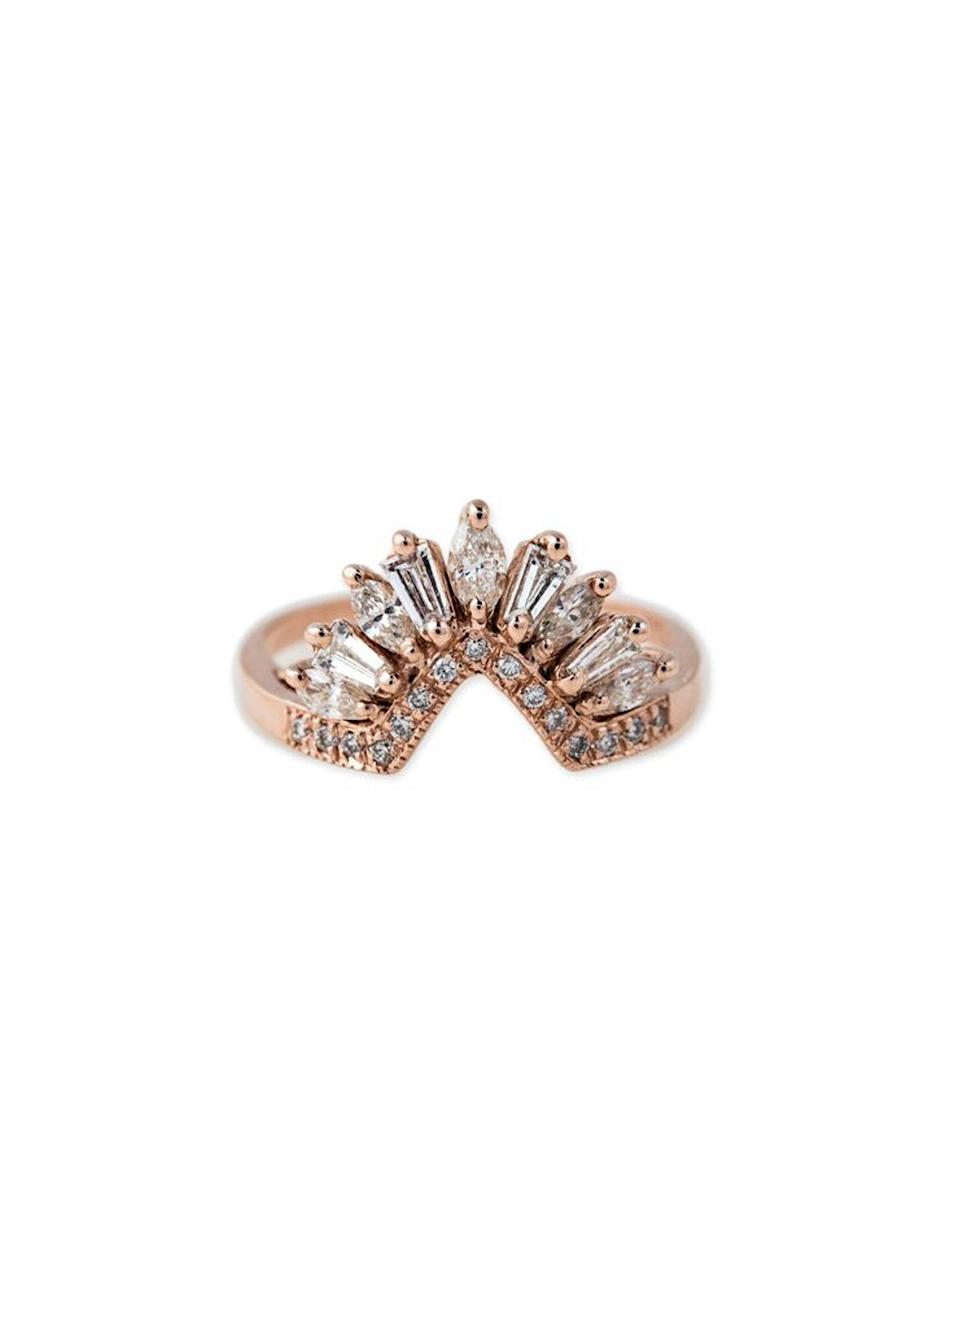 """Modern and versatile, a nesting band can be worn in lieu of a wedding band, two bands on either side of an engagement ring, or stacked two or three deep to create the illusion of a bigger or more ornate ring. $3625, Jacquie Aiche. <a href=""""https://jacquieaiche.com/collections/rings/products/diamond-marquise-baguette-fringe-band"""" rel=""""nofollow noopener"""" target=""""_blank"""" data-ylk=""""slk:Get it now!"""" class=""""link rapid-noclick-resp"""">Get it now!</a>"""